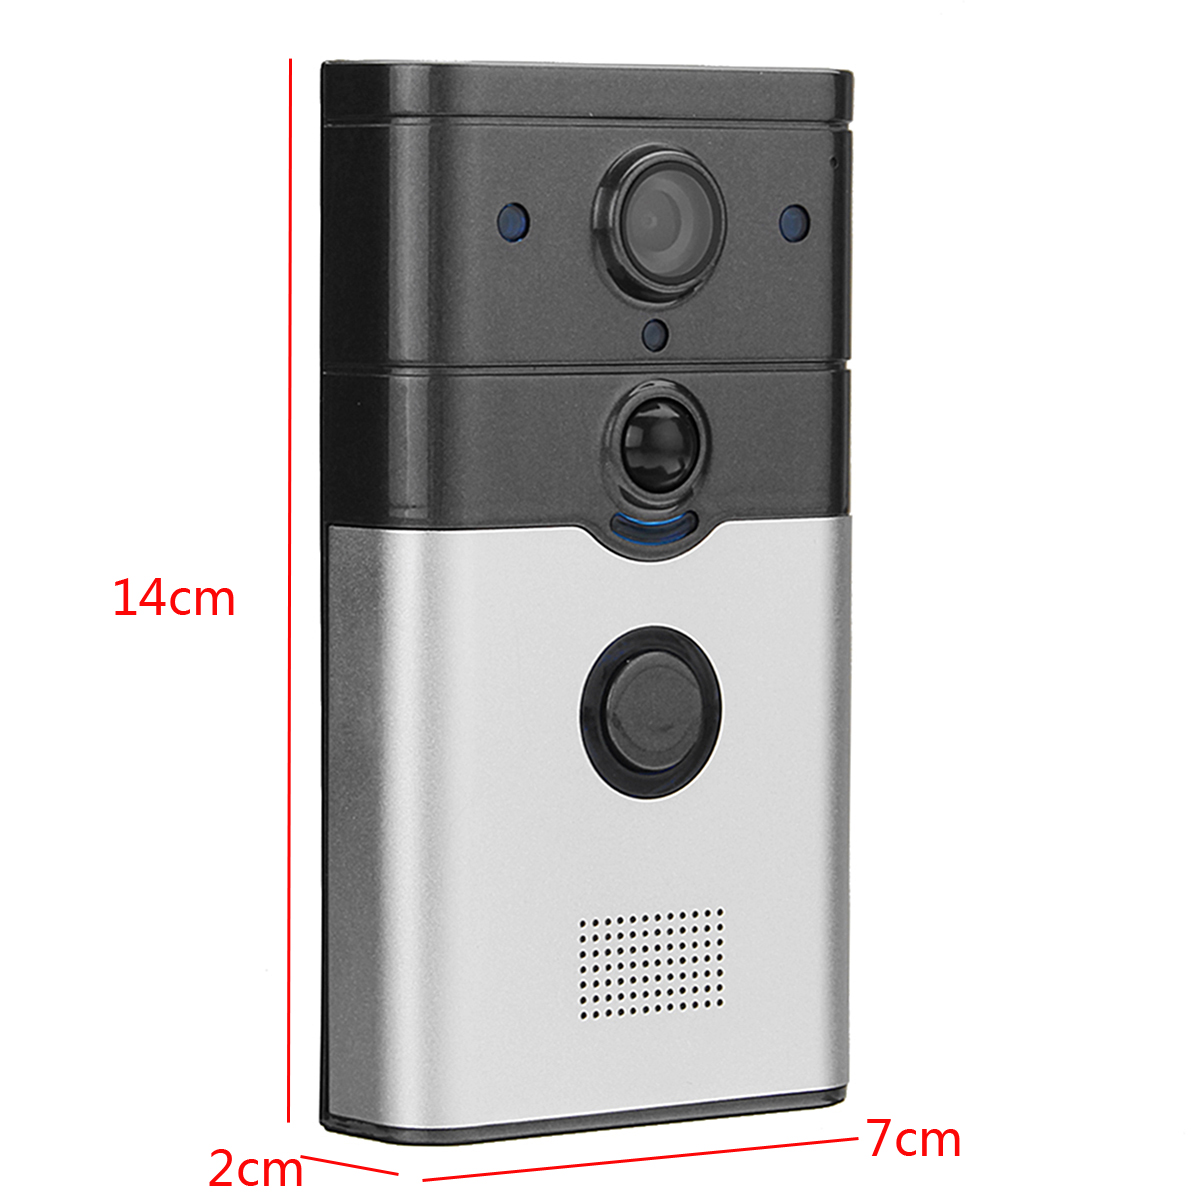 Wireless WiFi Smart Home HD Video DoorBell Camera Phone Ring Intercom System